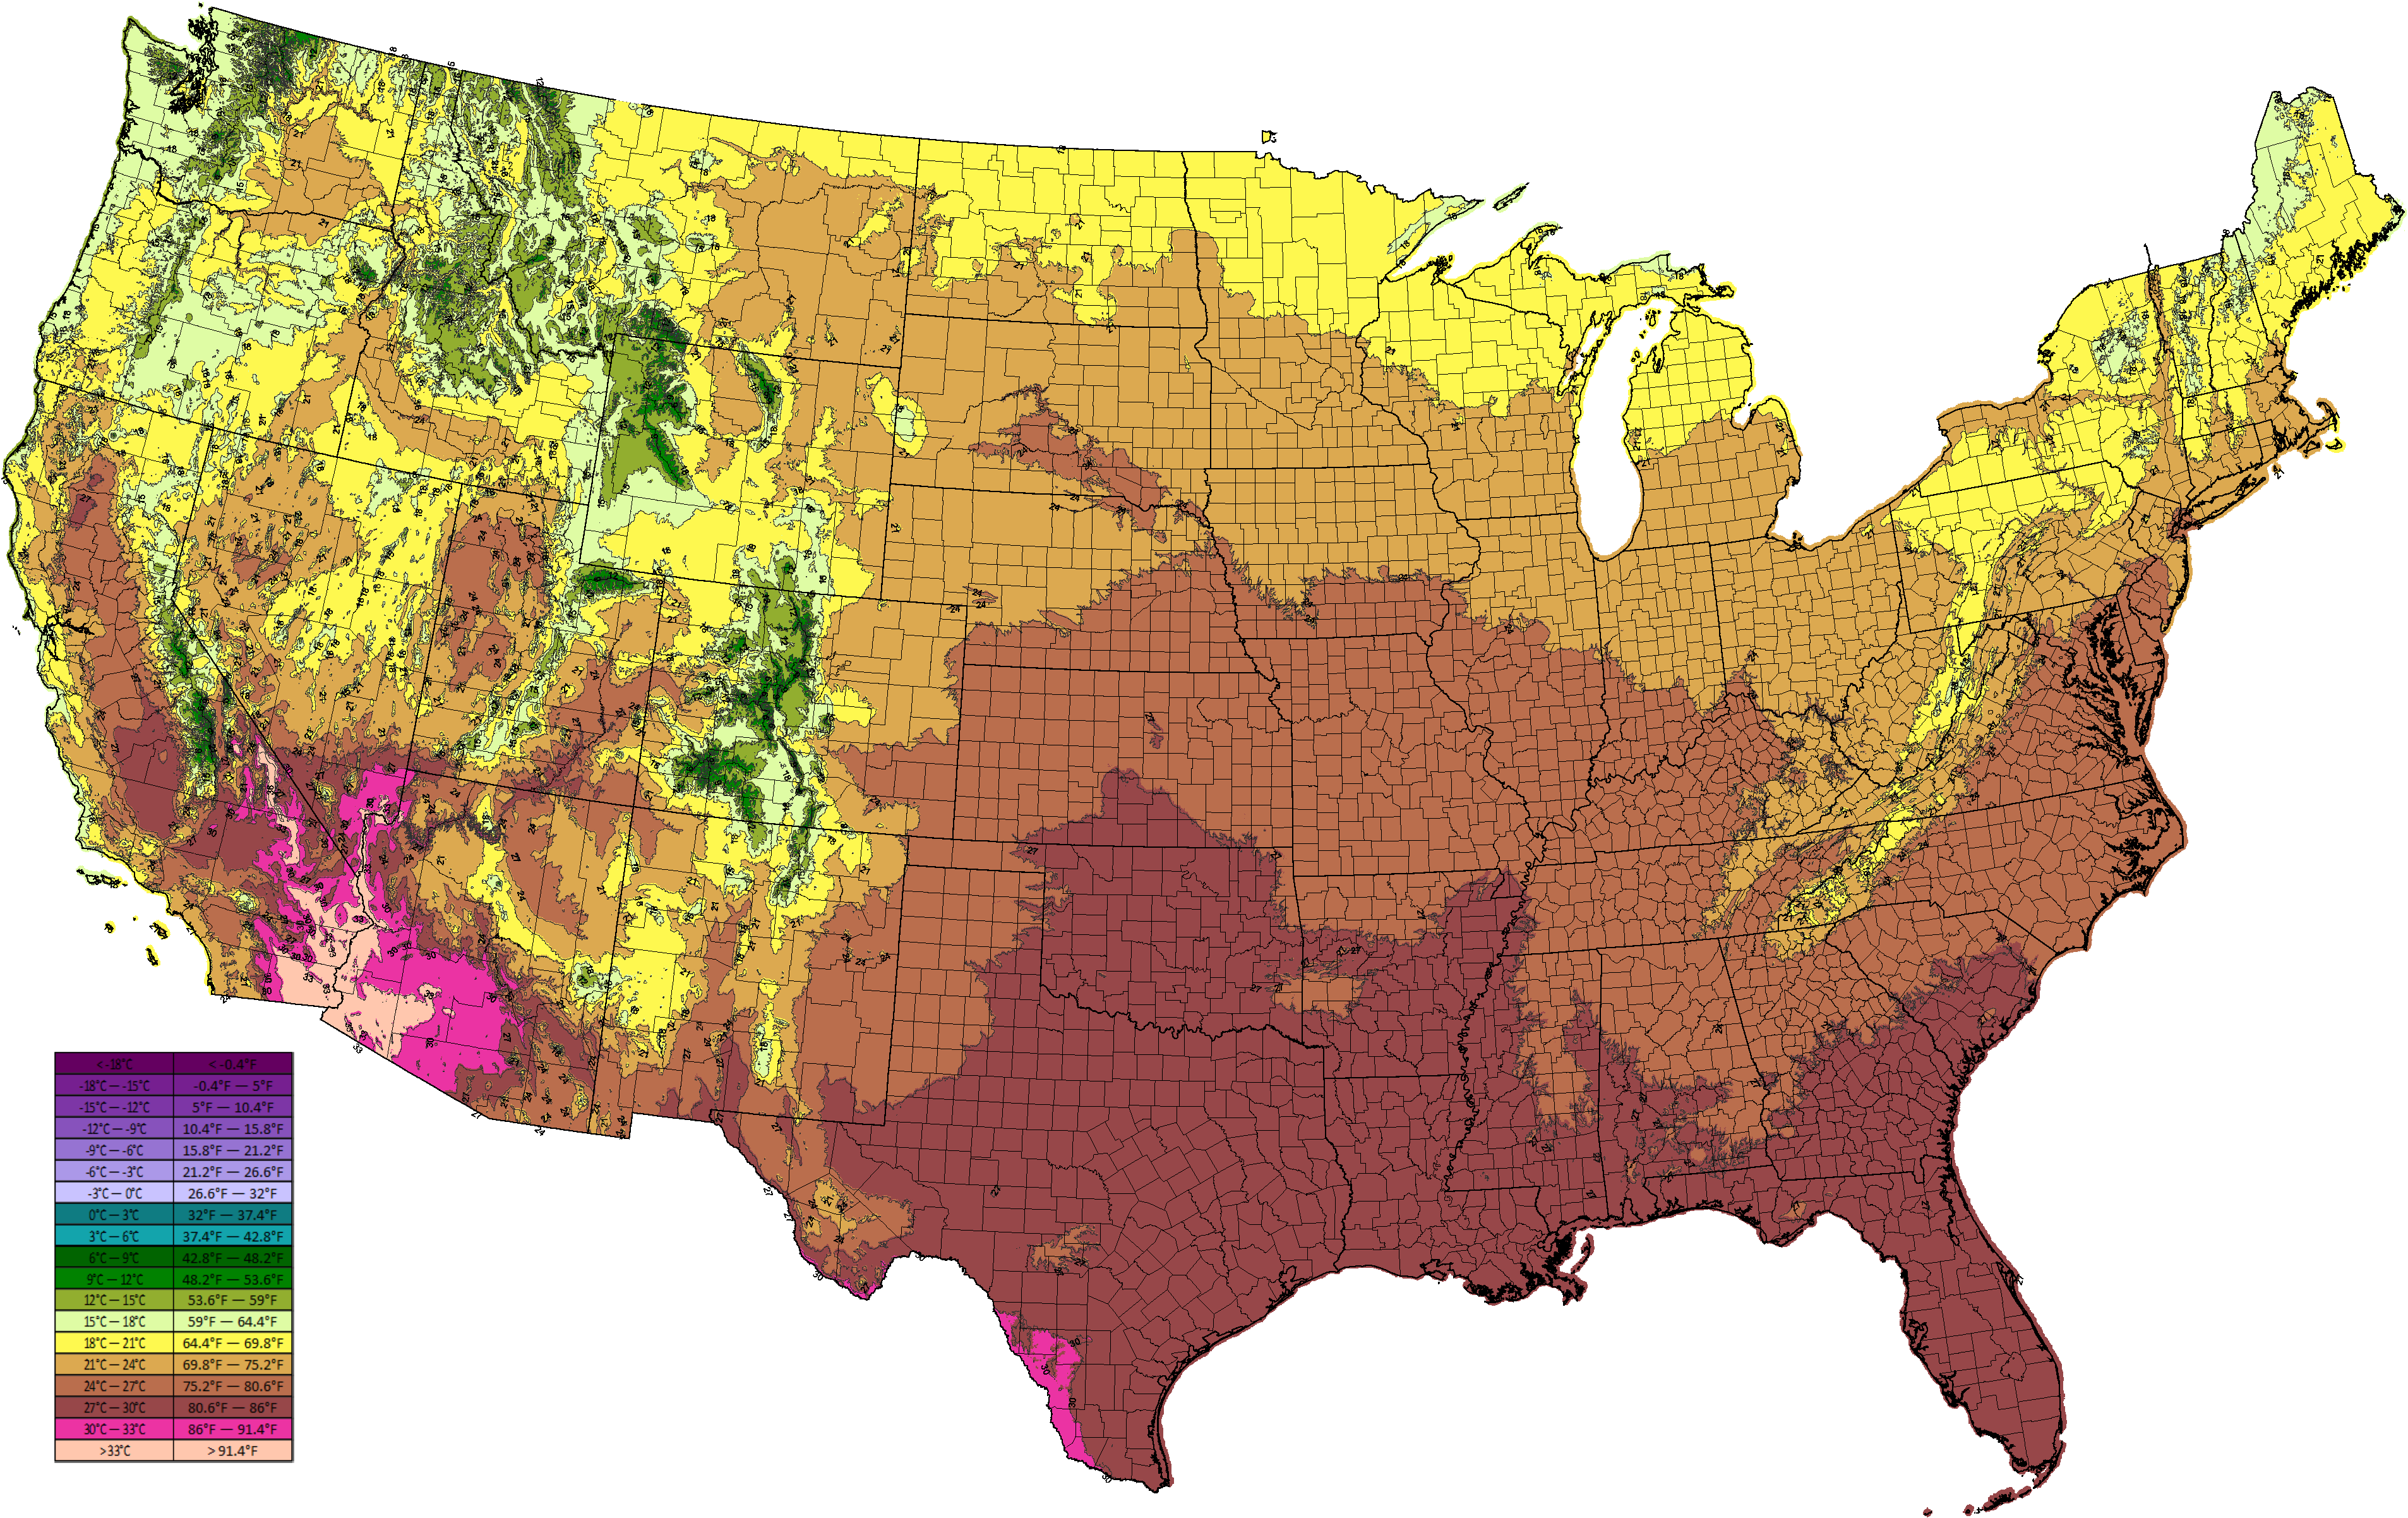 Average Tempature in the USA by county